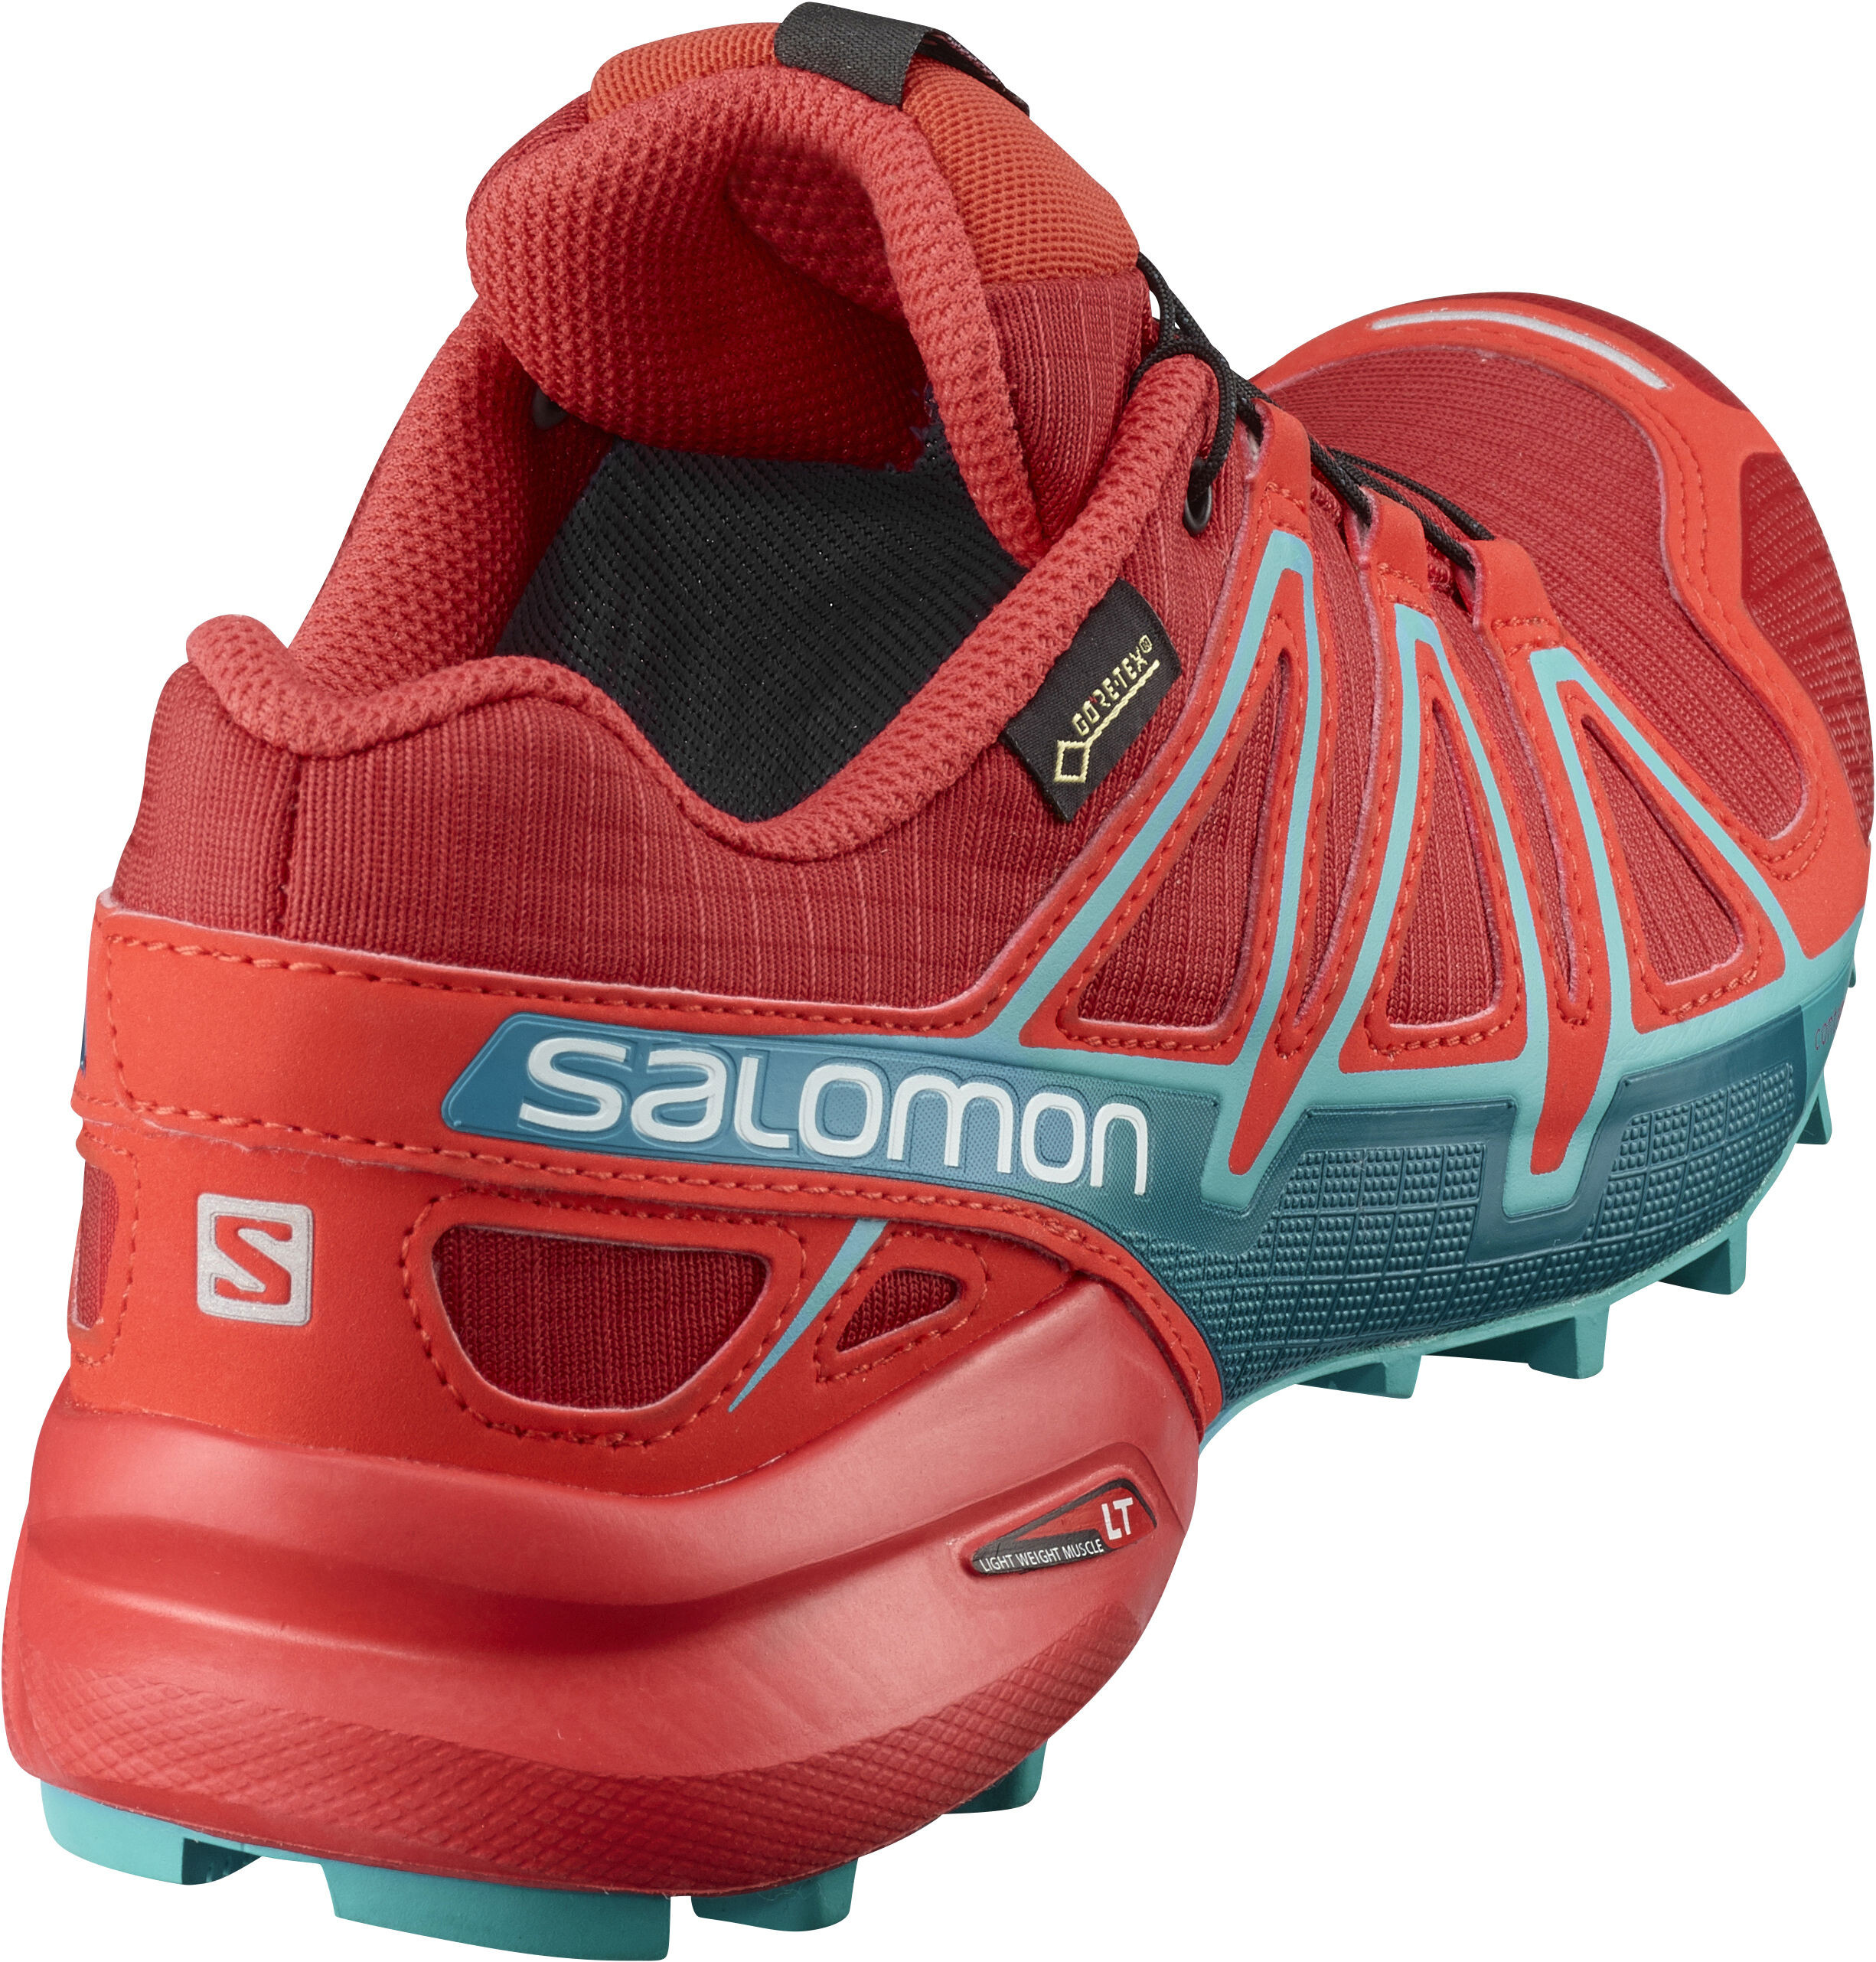 sports shoes d9923 d7bfe Salomon Speedcross 4 GTX - Chaussures running Femme - rouge turquoise